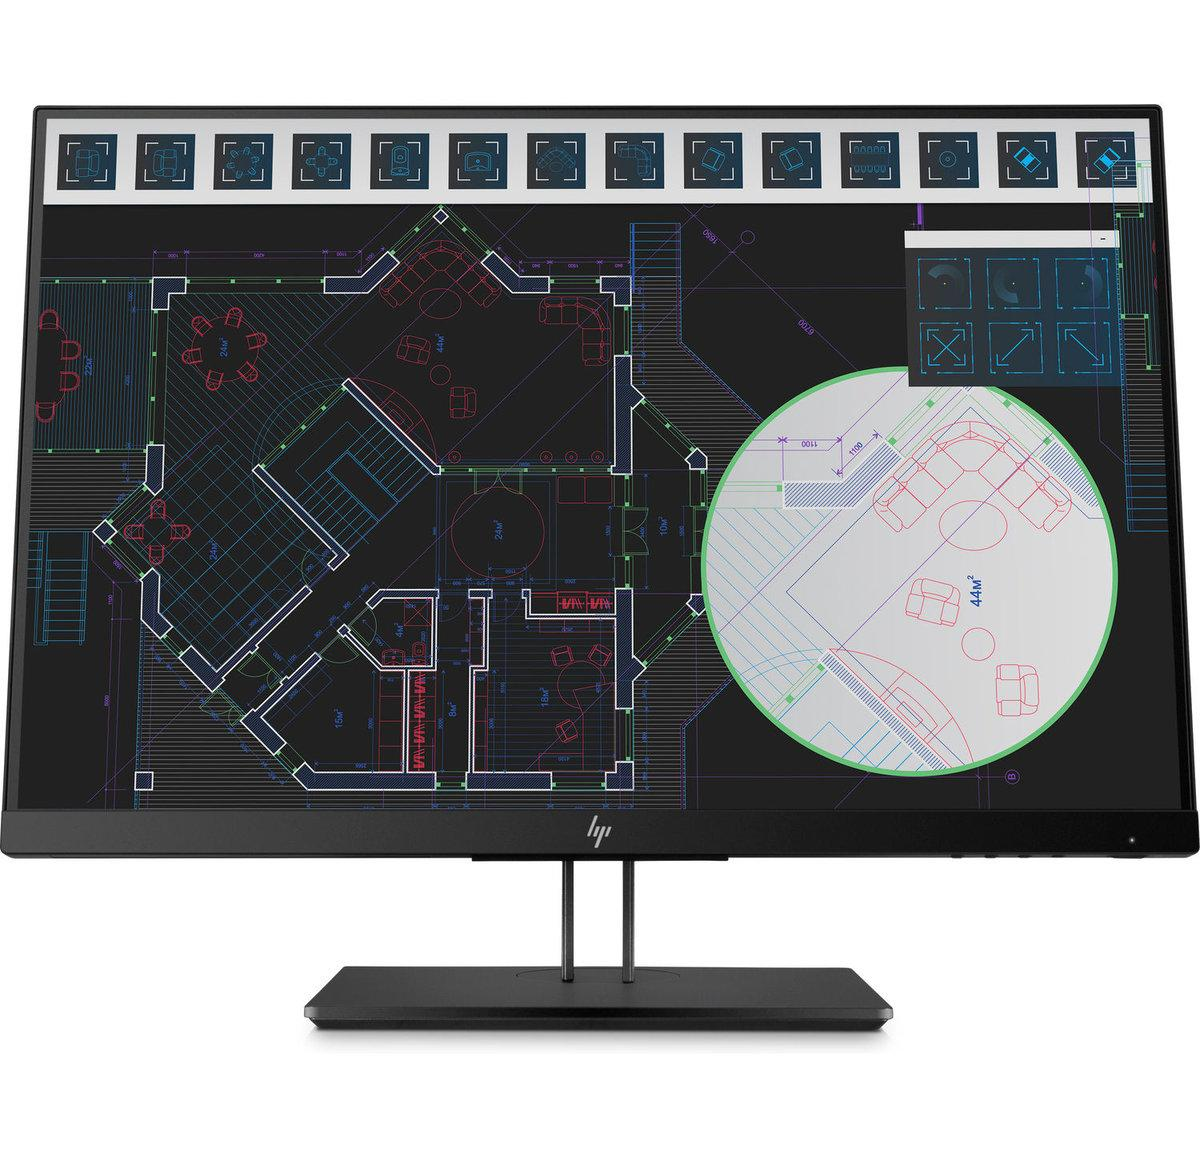 "Монитор HP 1JS08A4 Z24i G2 24"" IPS LED Monitor 1920x1200@60 Hz, 5ms, 0.27 mm, 1000:1 (10000000:1), 178/178, VG"